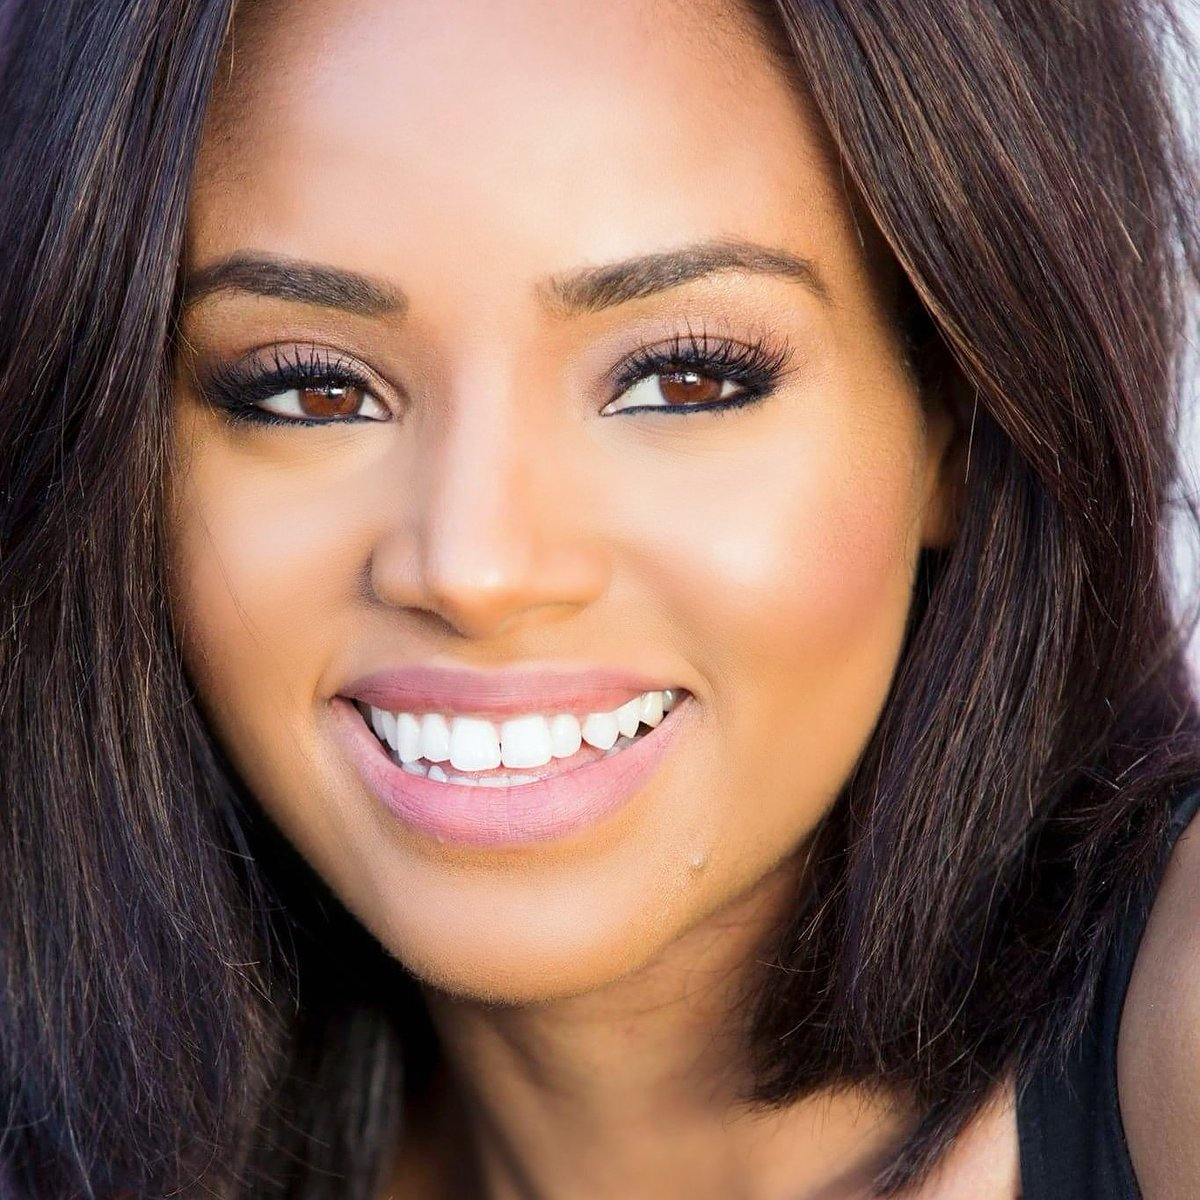 Leaked Twitter Meagan Tandy naked photo 2017